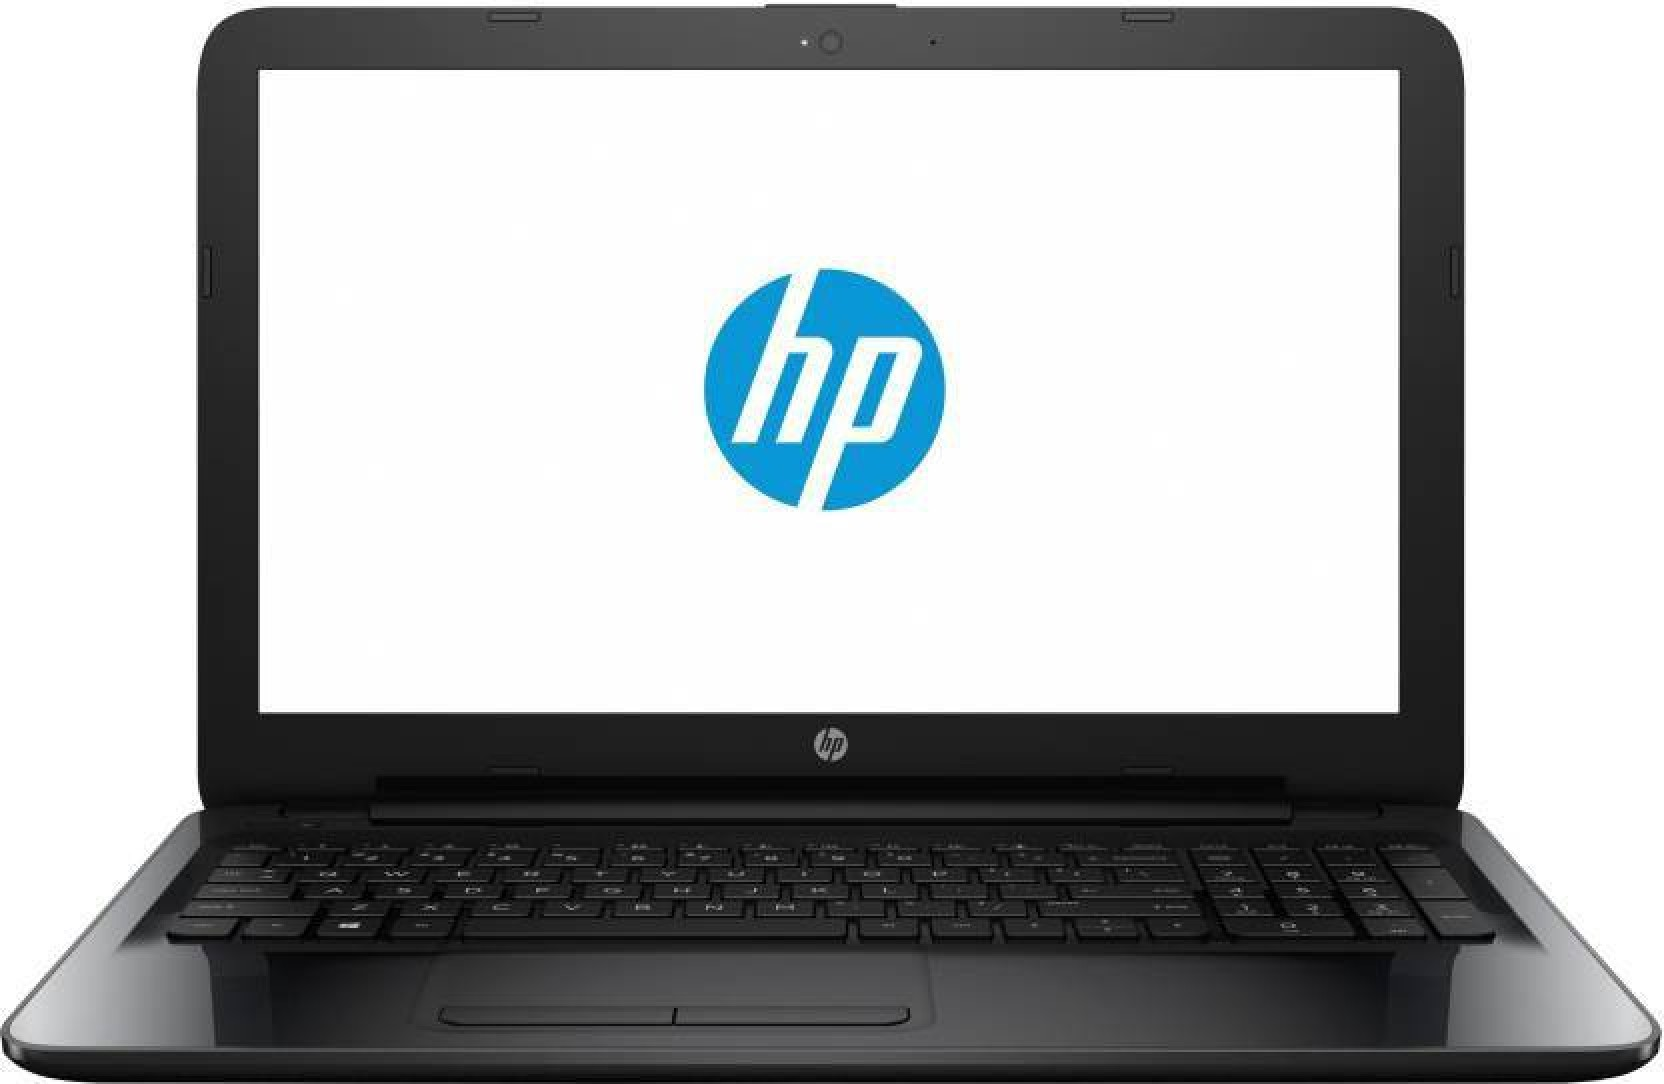 HP India's most complete online store for Laptops, PCs, Tablets, Monitors, Printers, Inks & Toners, Workstations, Accessories and more! Largest selection for HP brands at lowest price. Payment options - COD, EMI, Credit card, Debit card & more.